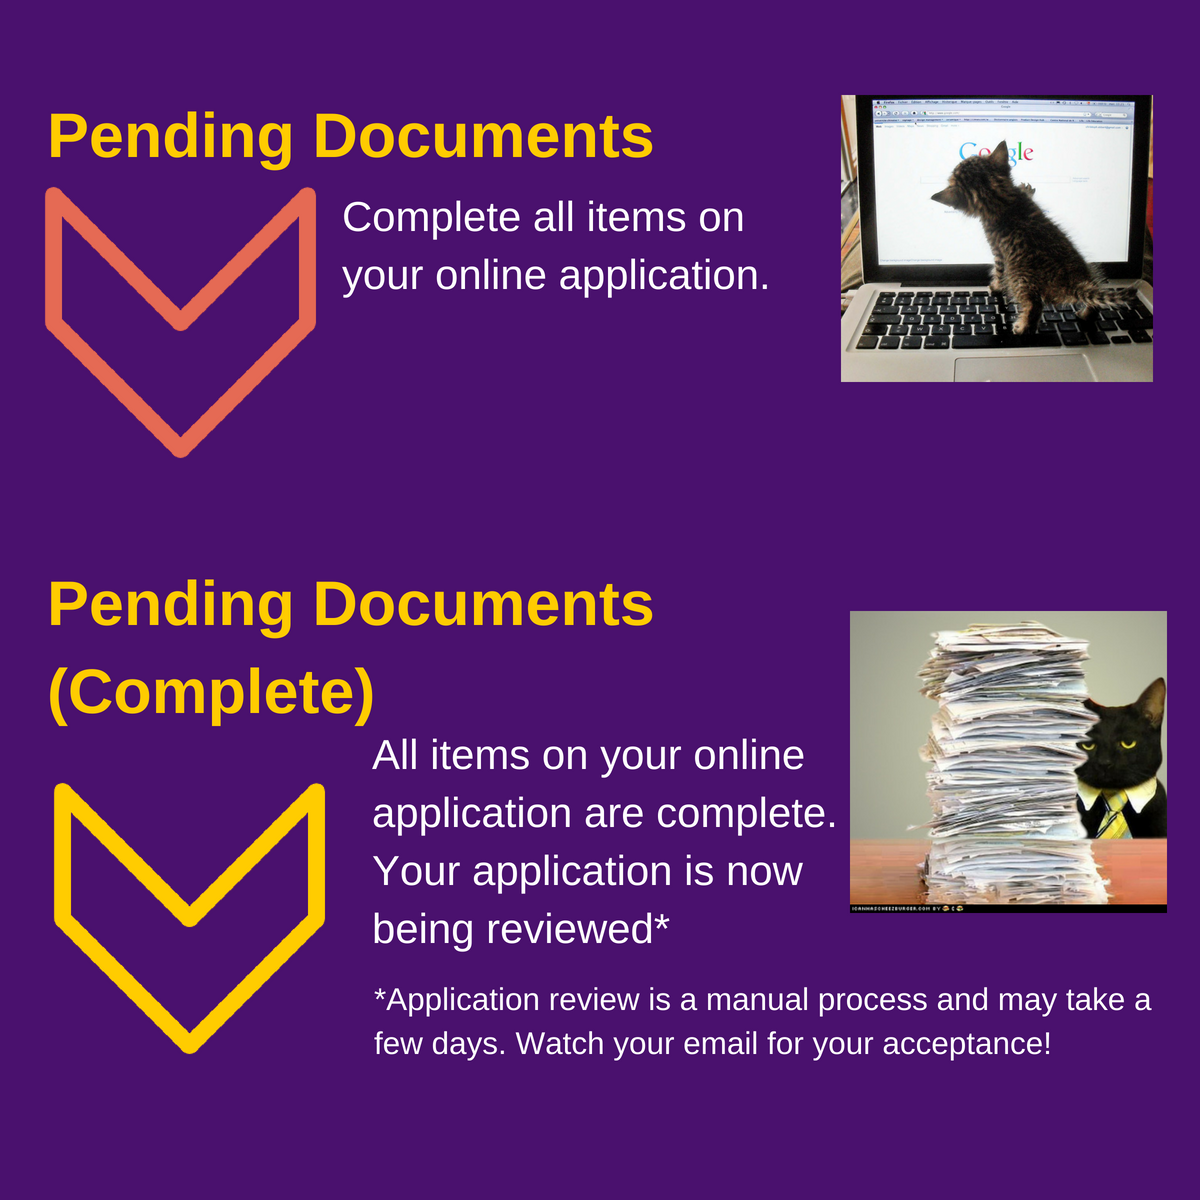 Stages of the online application